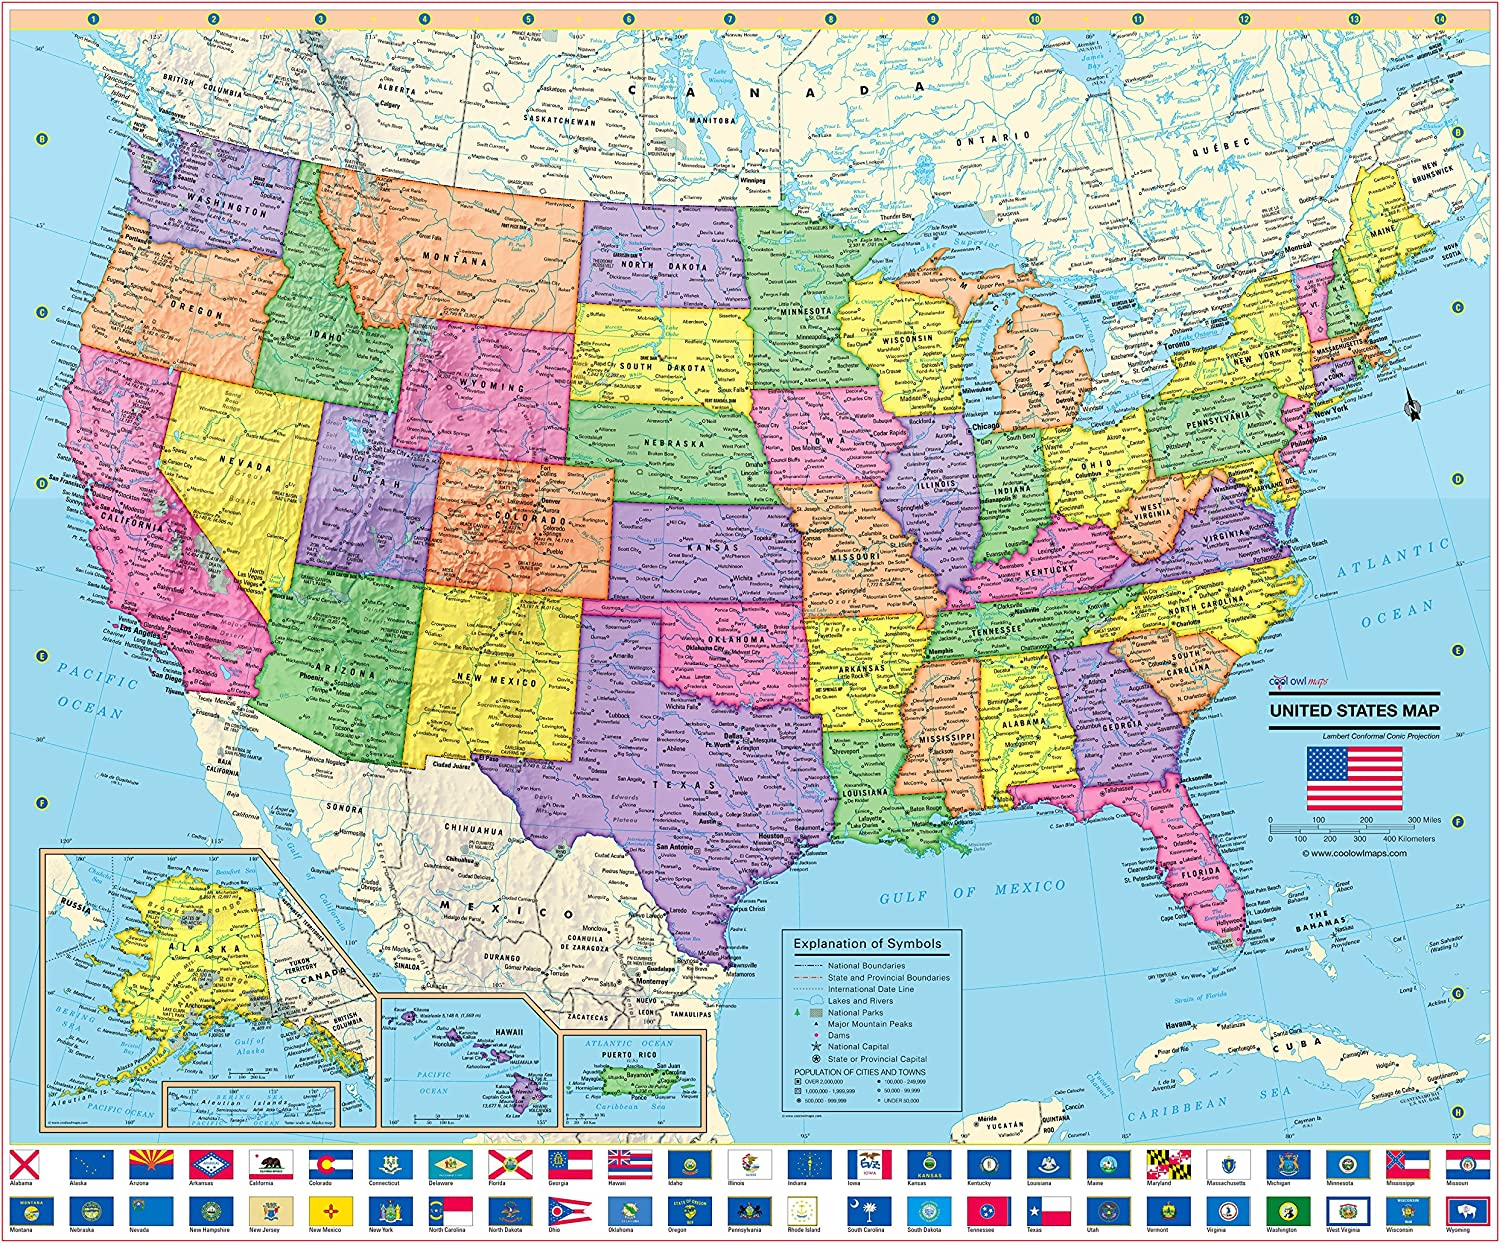 United States 50 State Map Amazon.: United States Wall Map Poster with State Flags